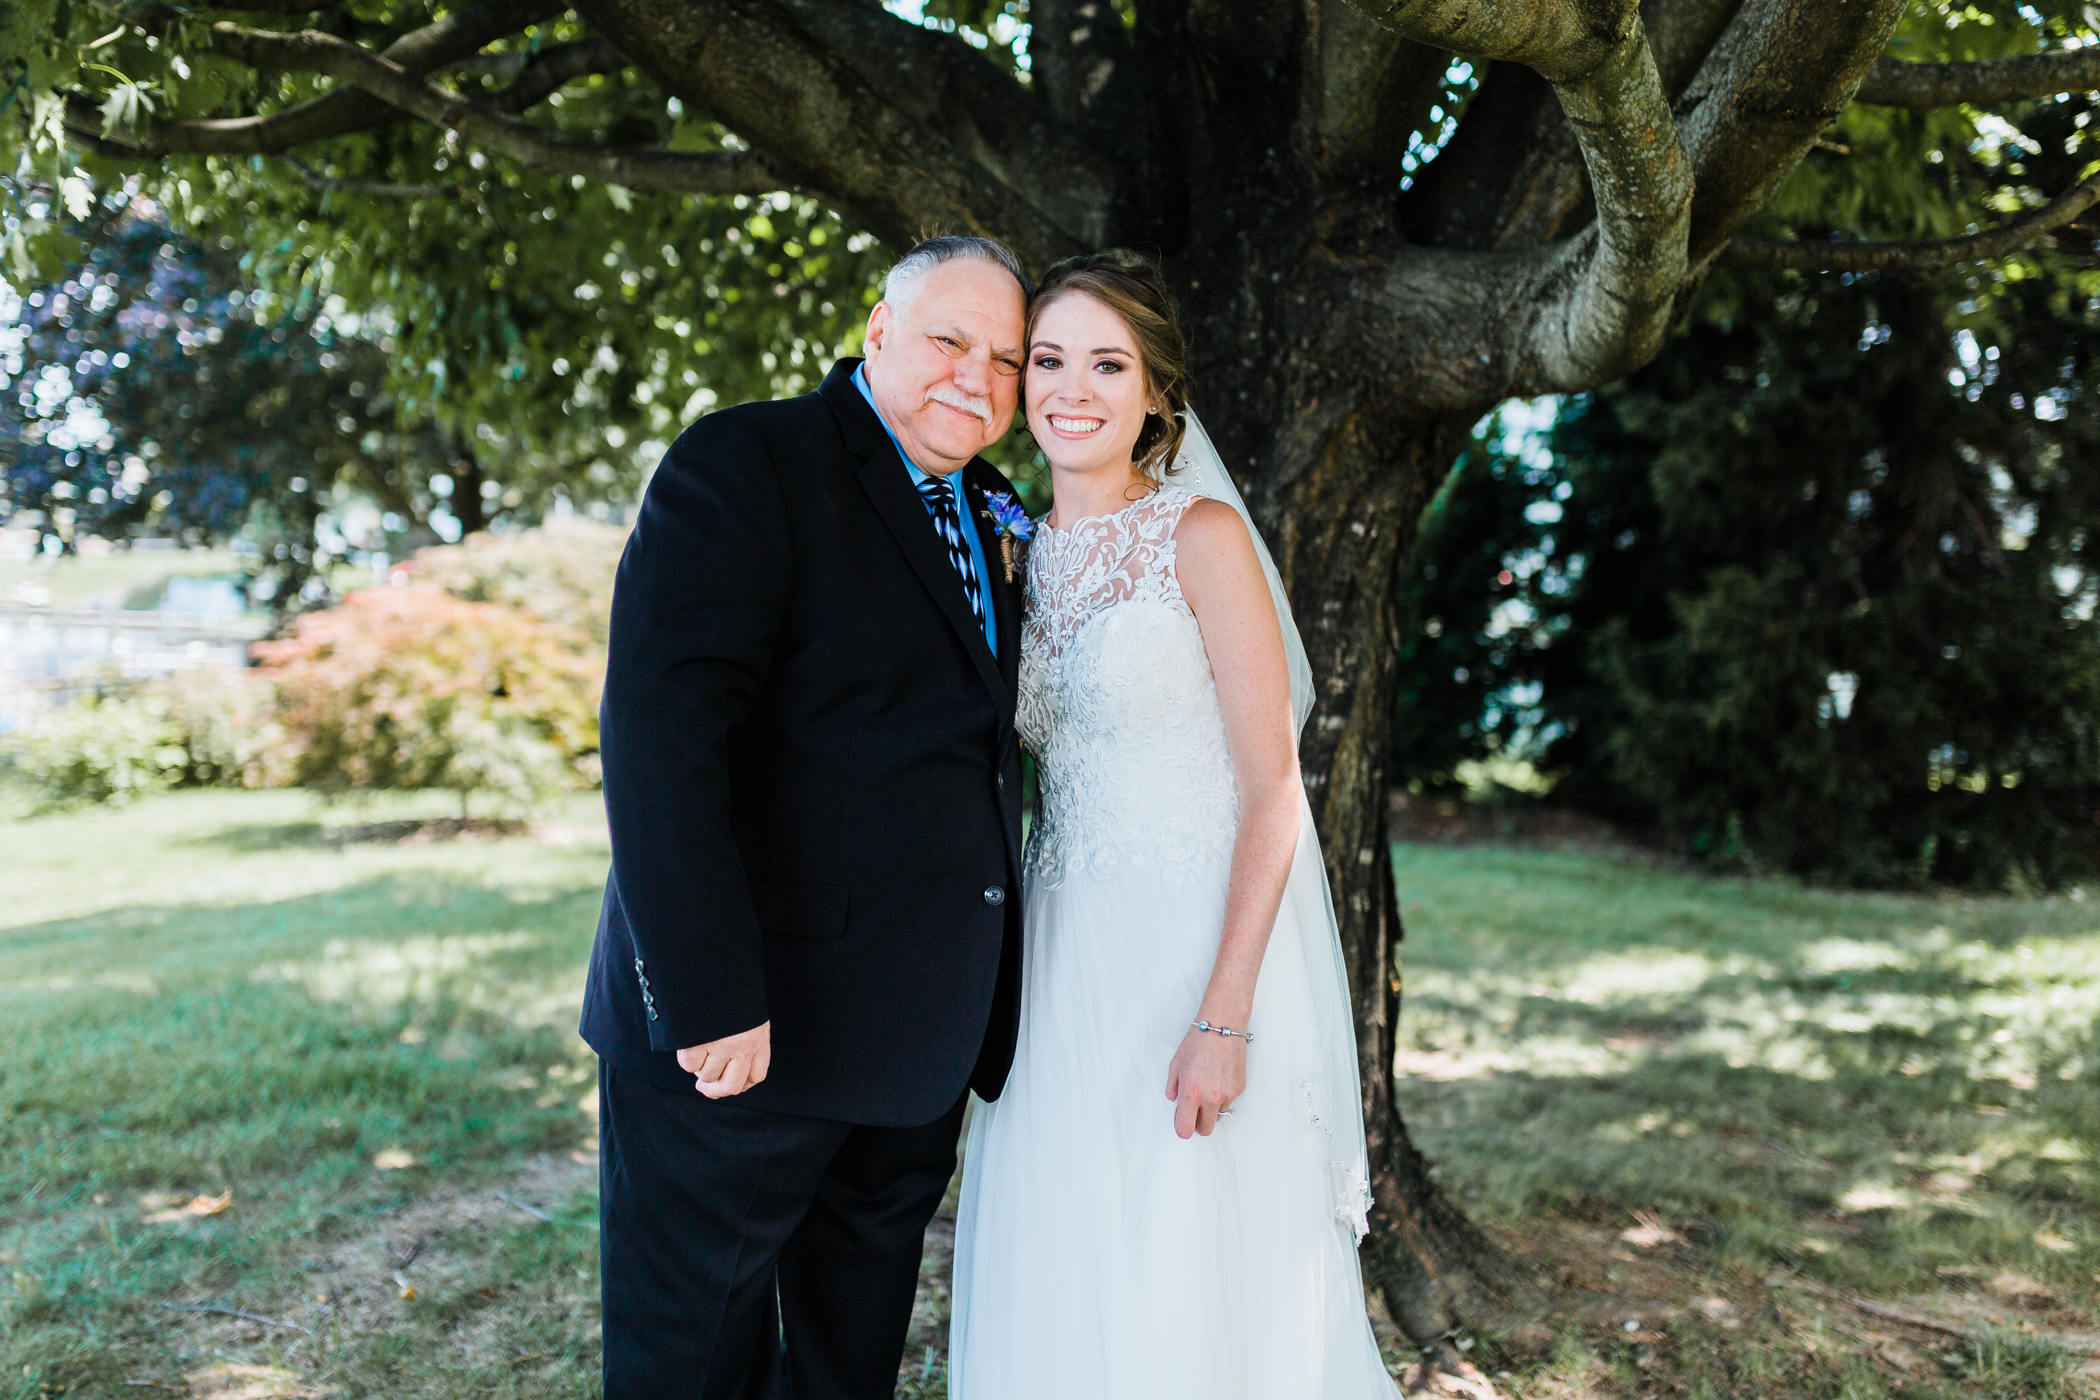 bride and grandfather first look - maryland and dmv wedding photography